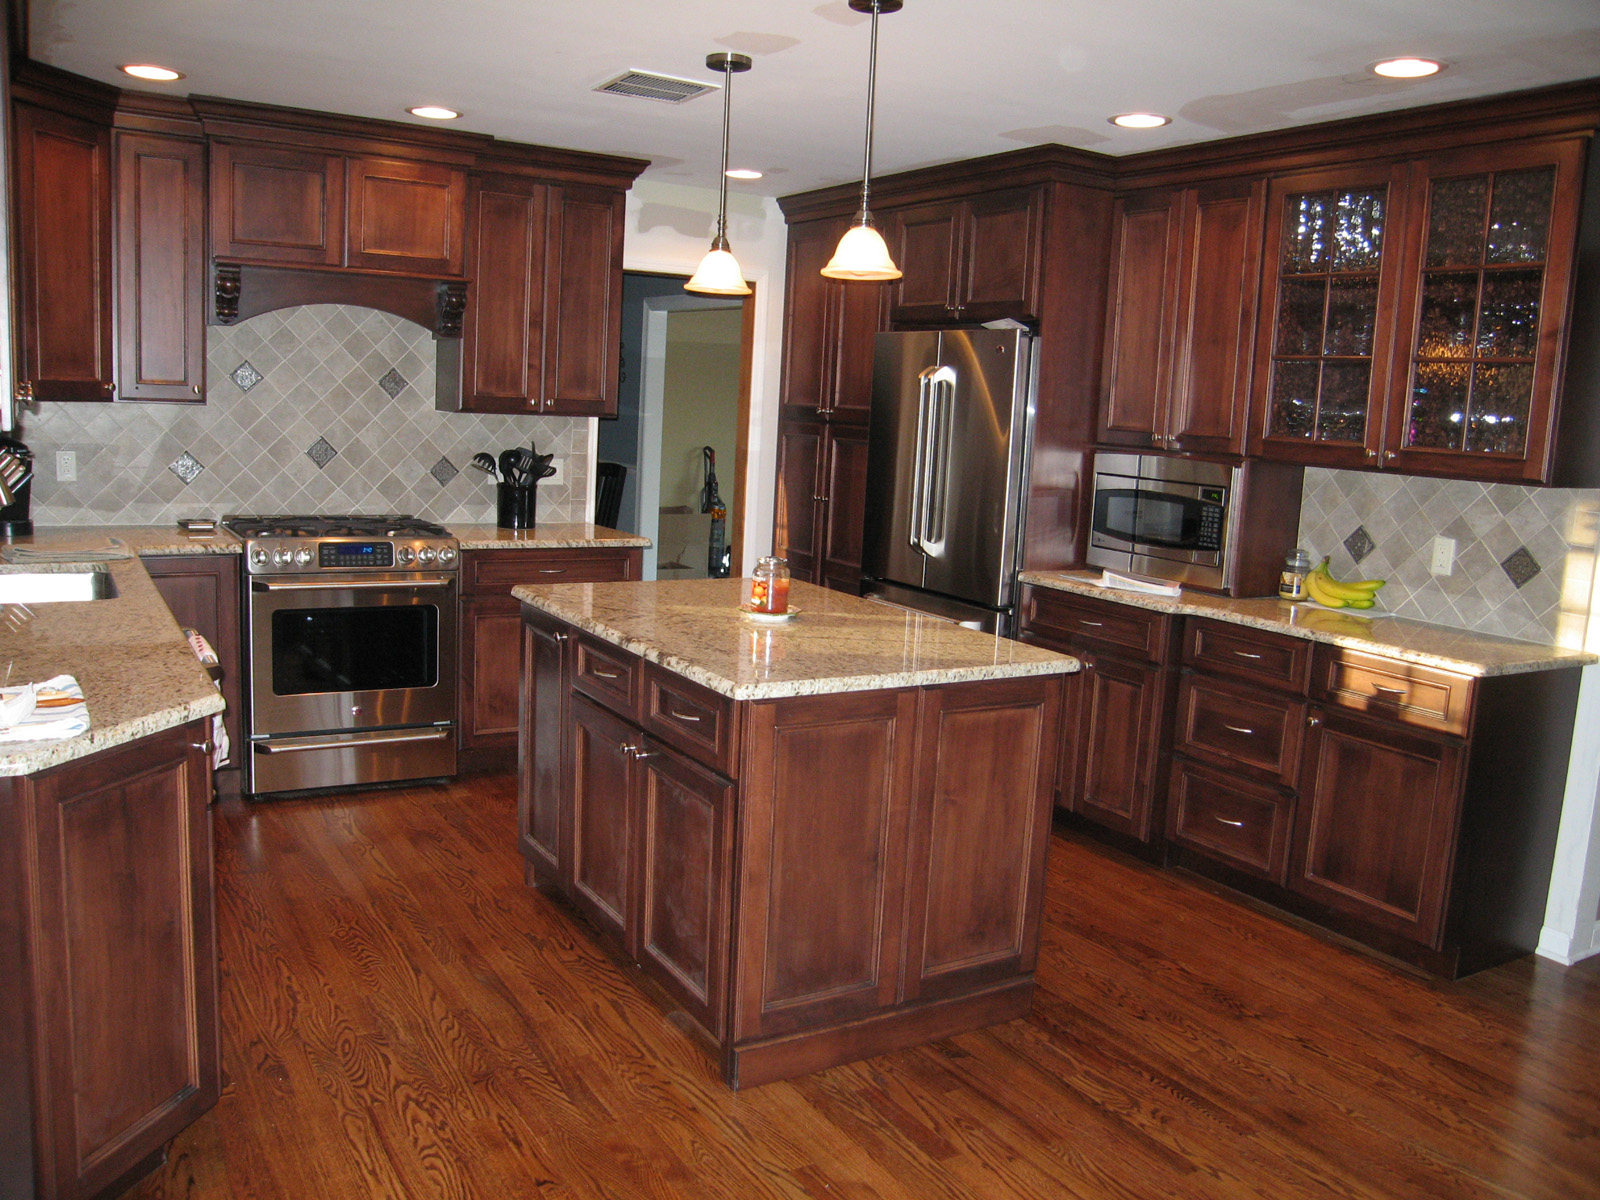 Custom Kitchens By Design custom kitchenschuck | kitchen, bathroom, countertop, cabinets